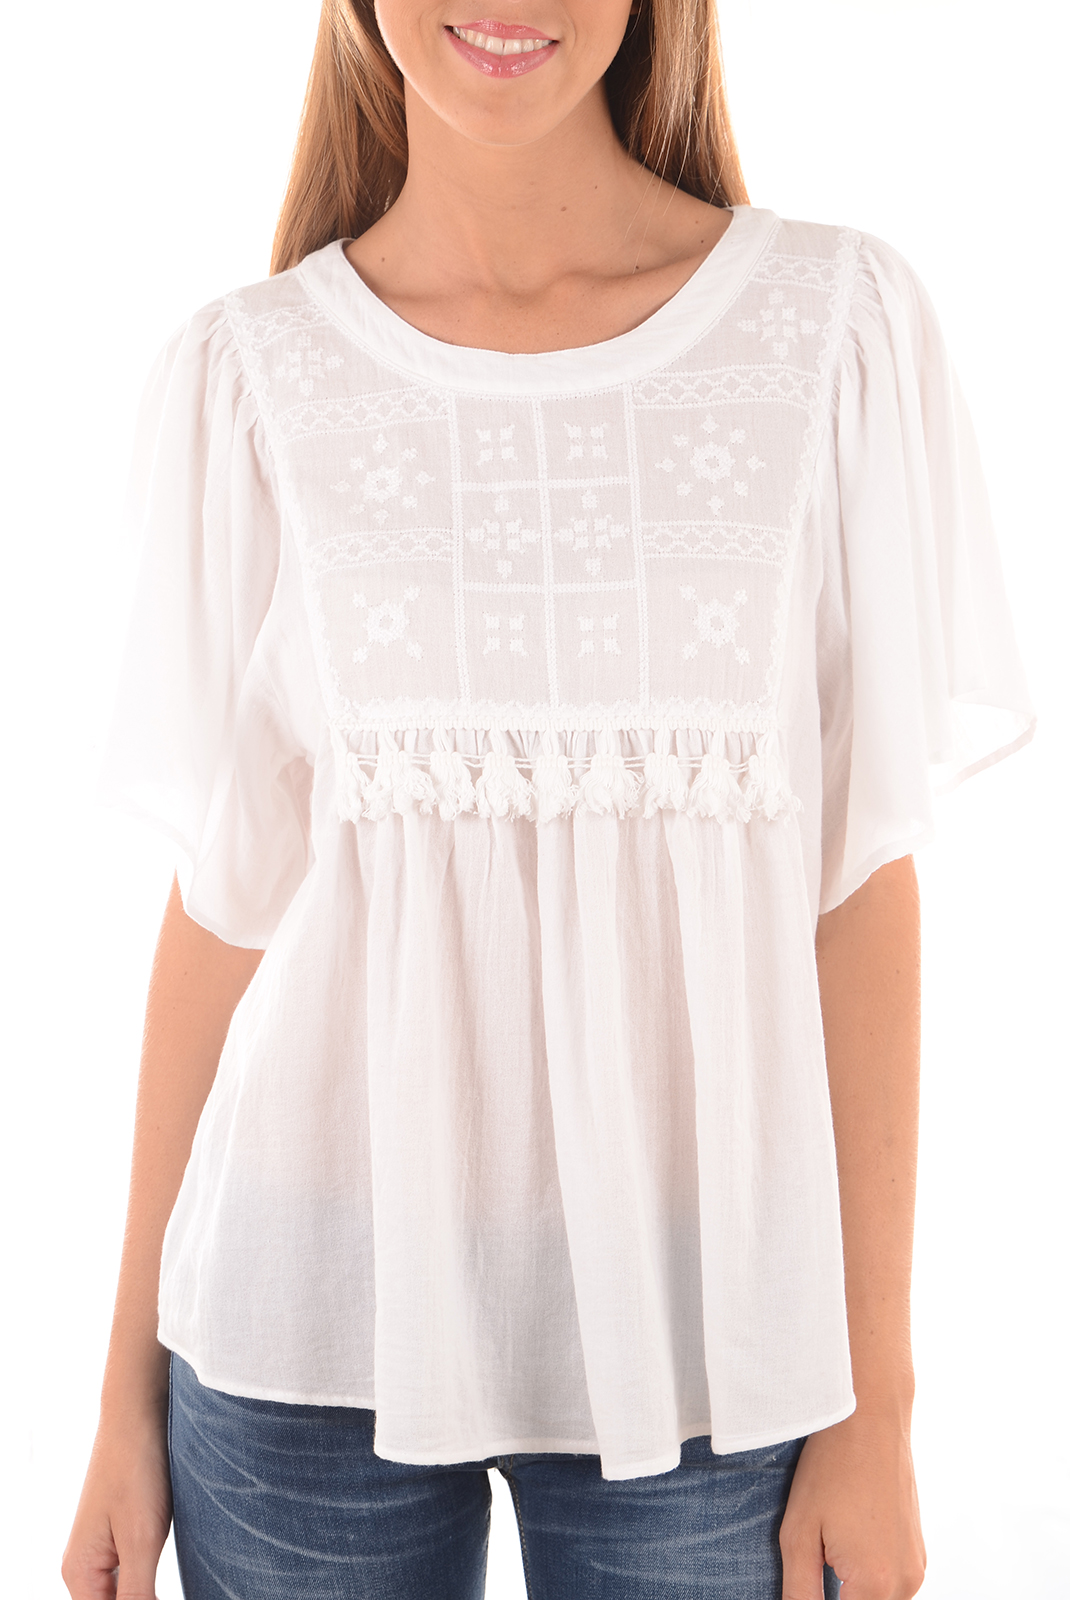 Tops & Tee shirts  Vero moda HUSSA SS TOP SNOW WHITE